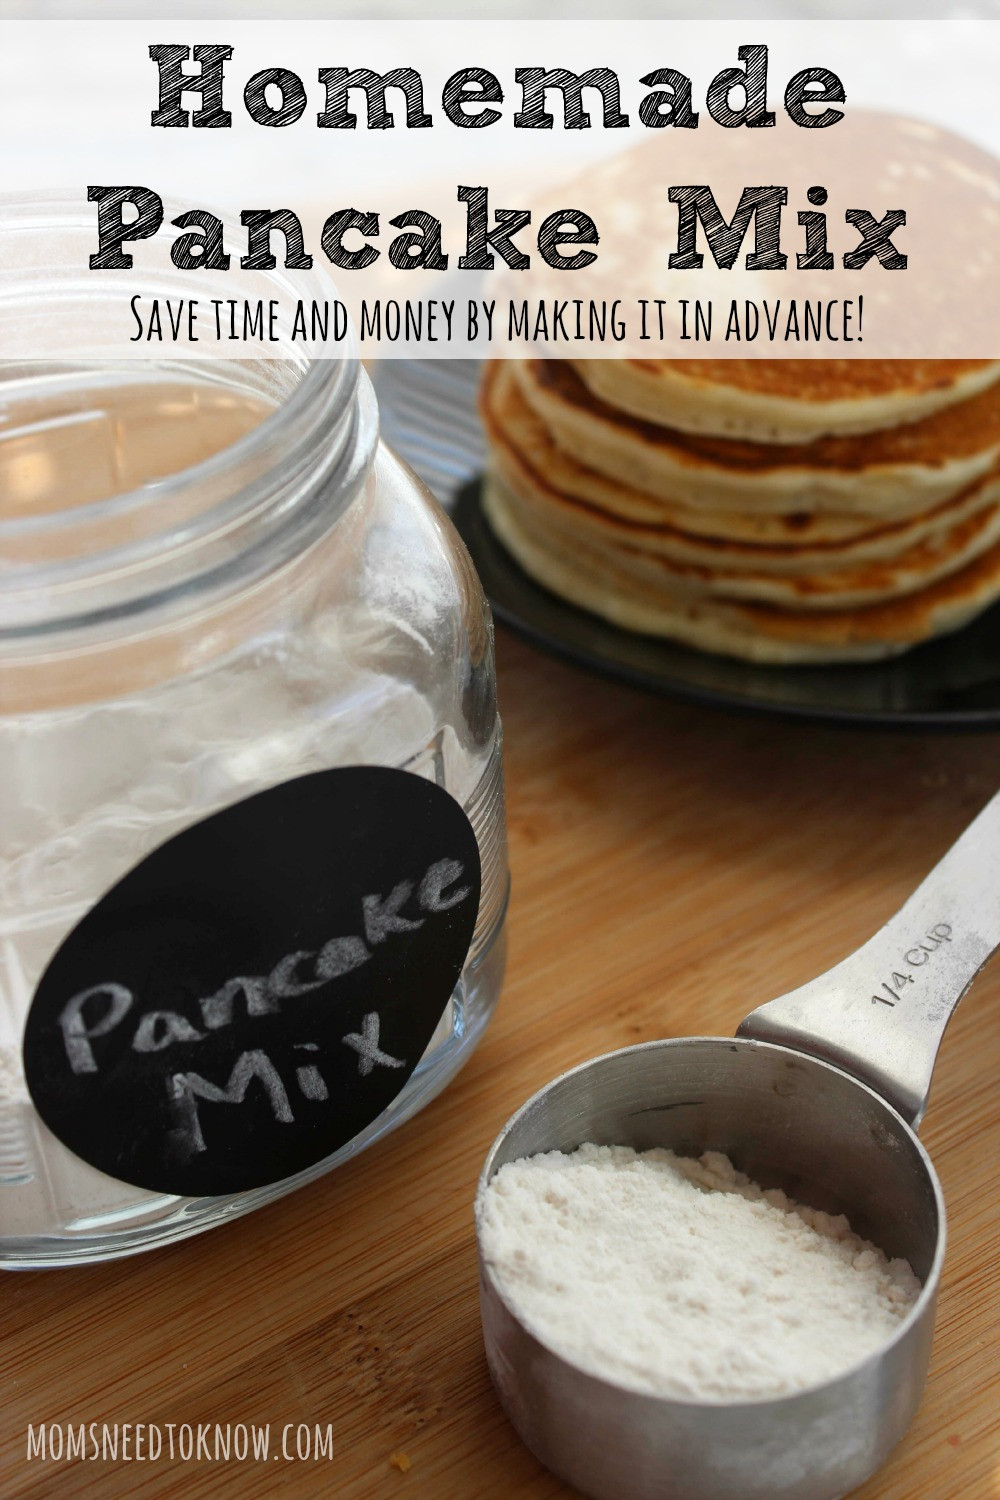 How To Make Pancakes With Mix  How To Make Your Own Homemade Pancake Mix